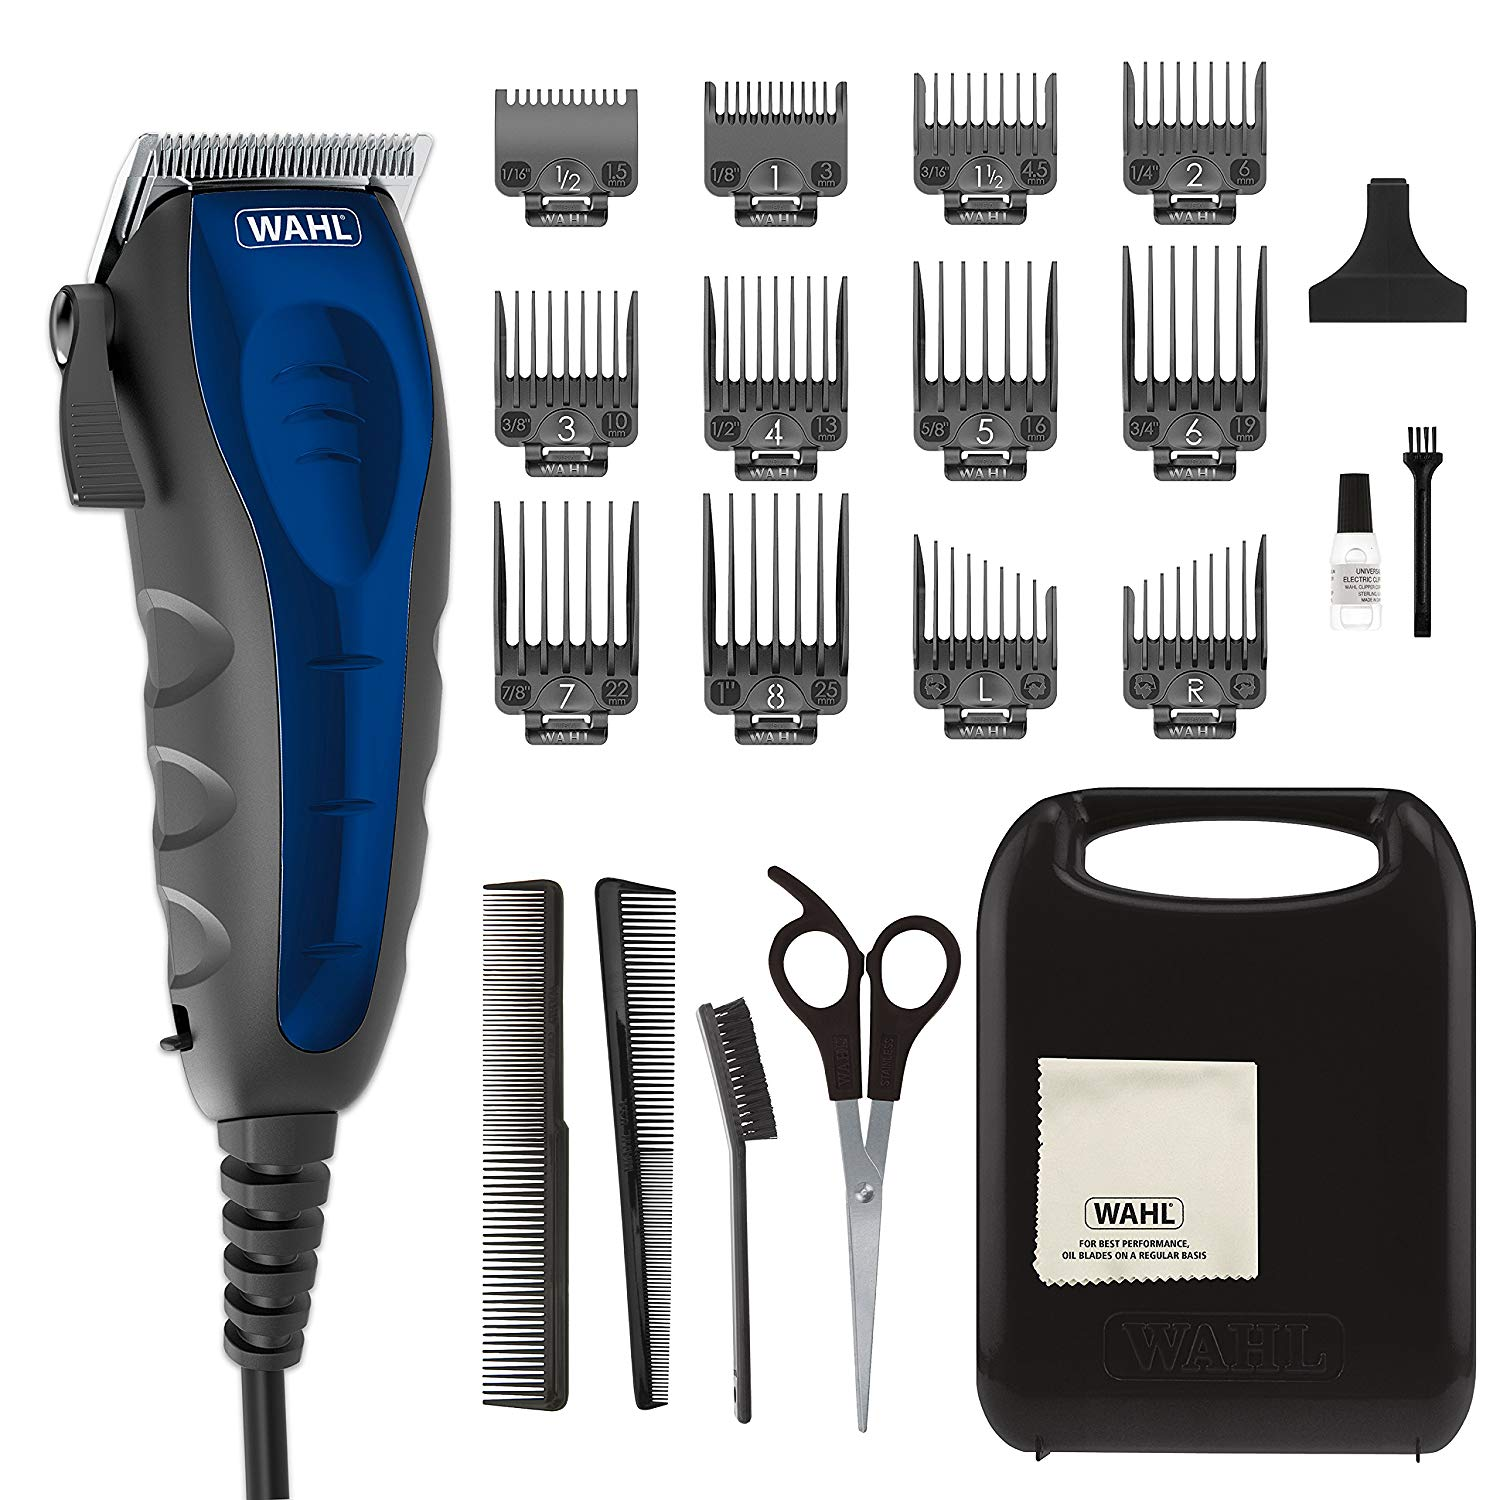 Wahl Clipper Self-Cut Haircutting